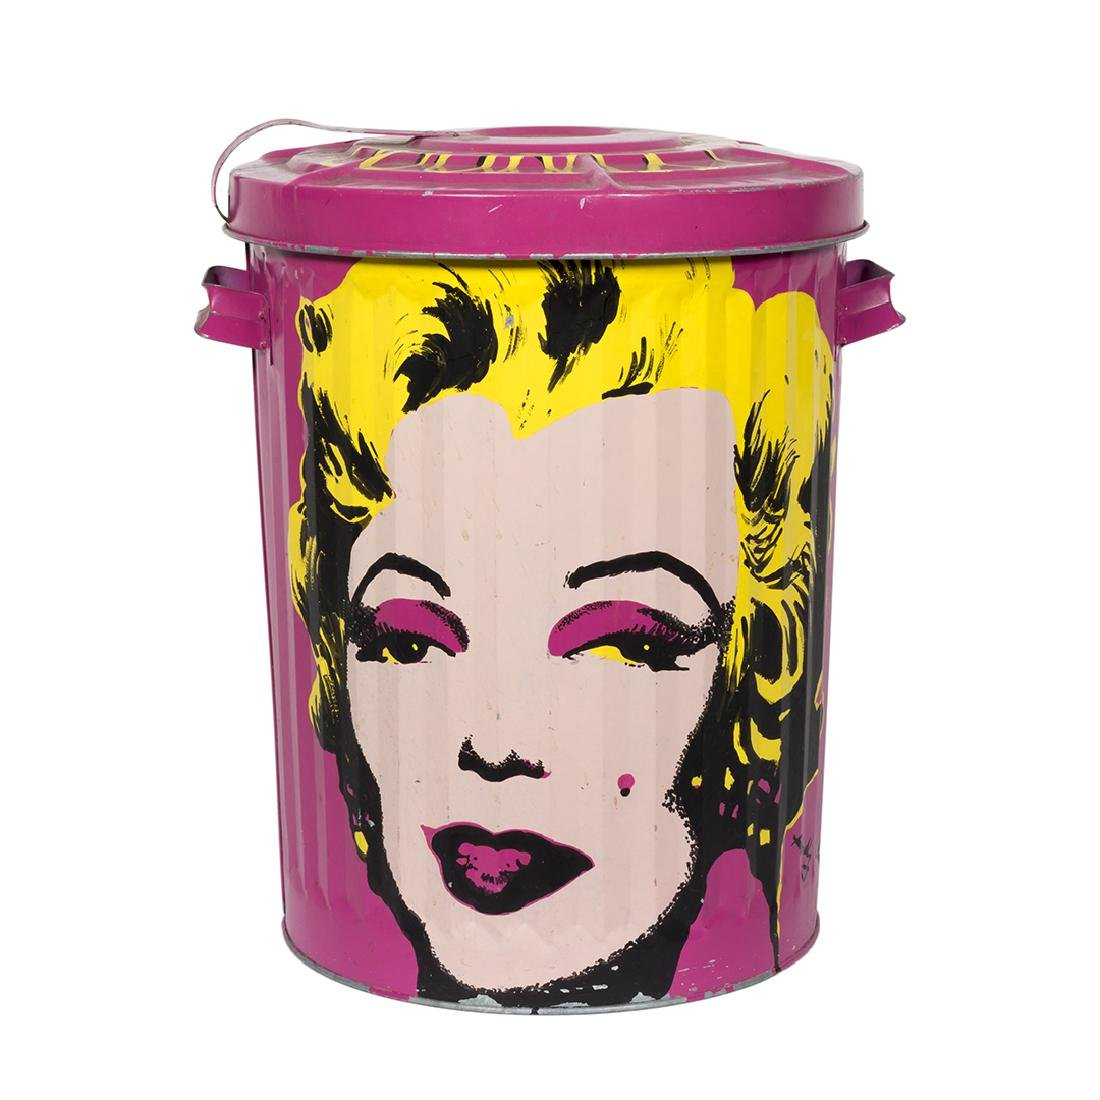 Painted Steel Trash Can After Warhol